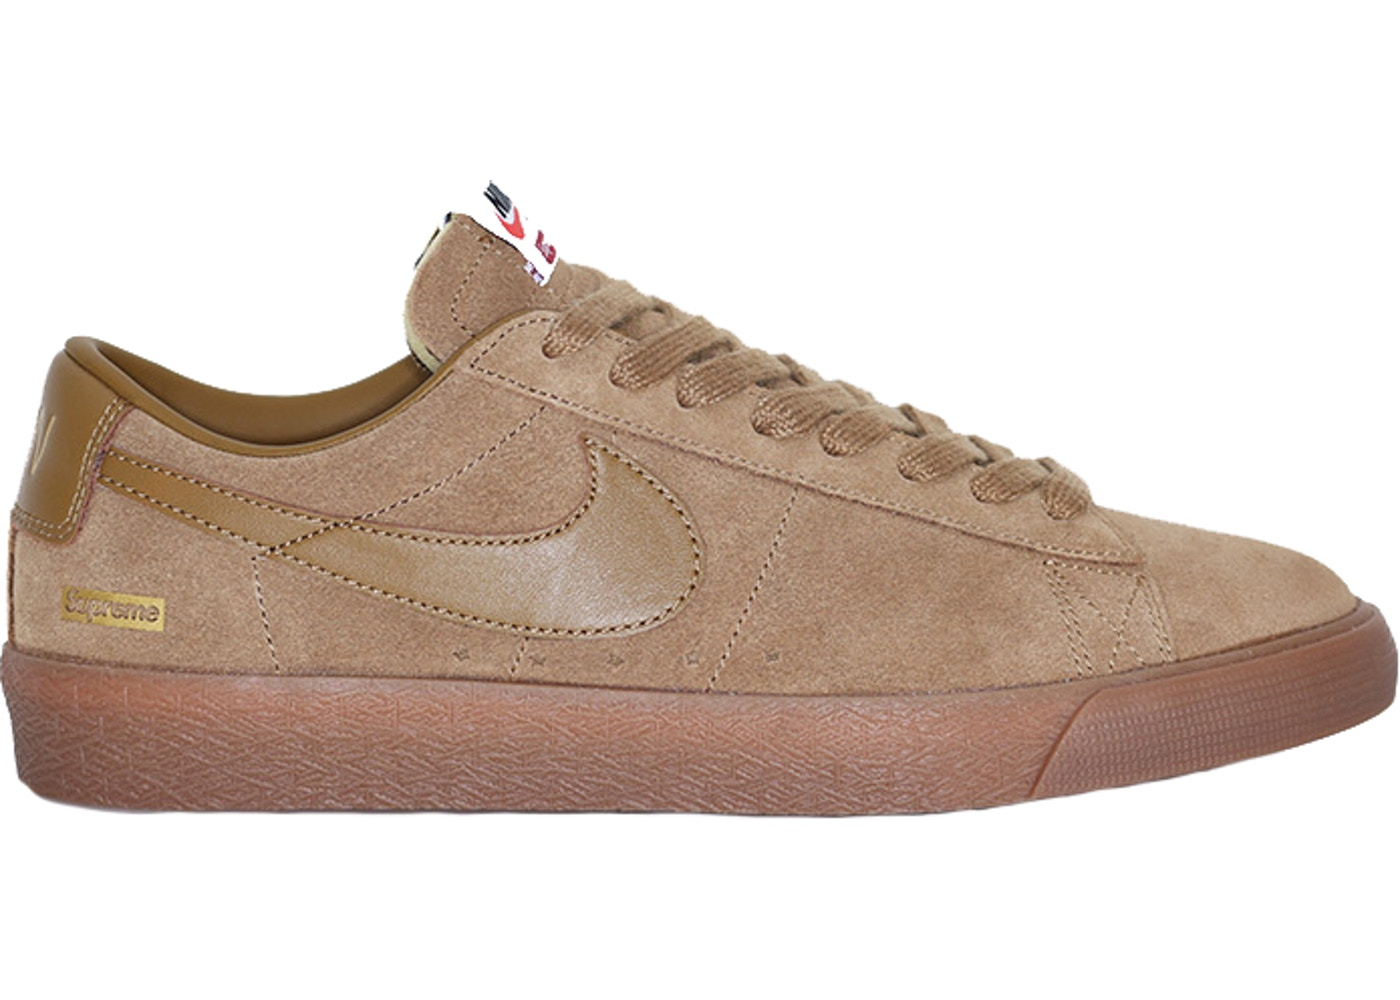 Nike SB Blazer Low GT Supreme Golden Beige